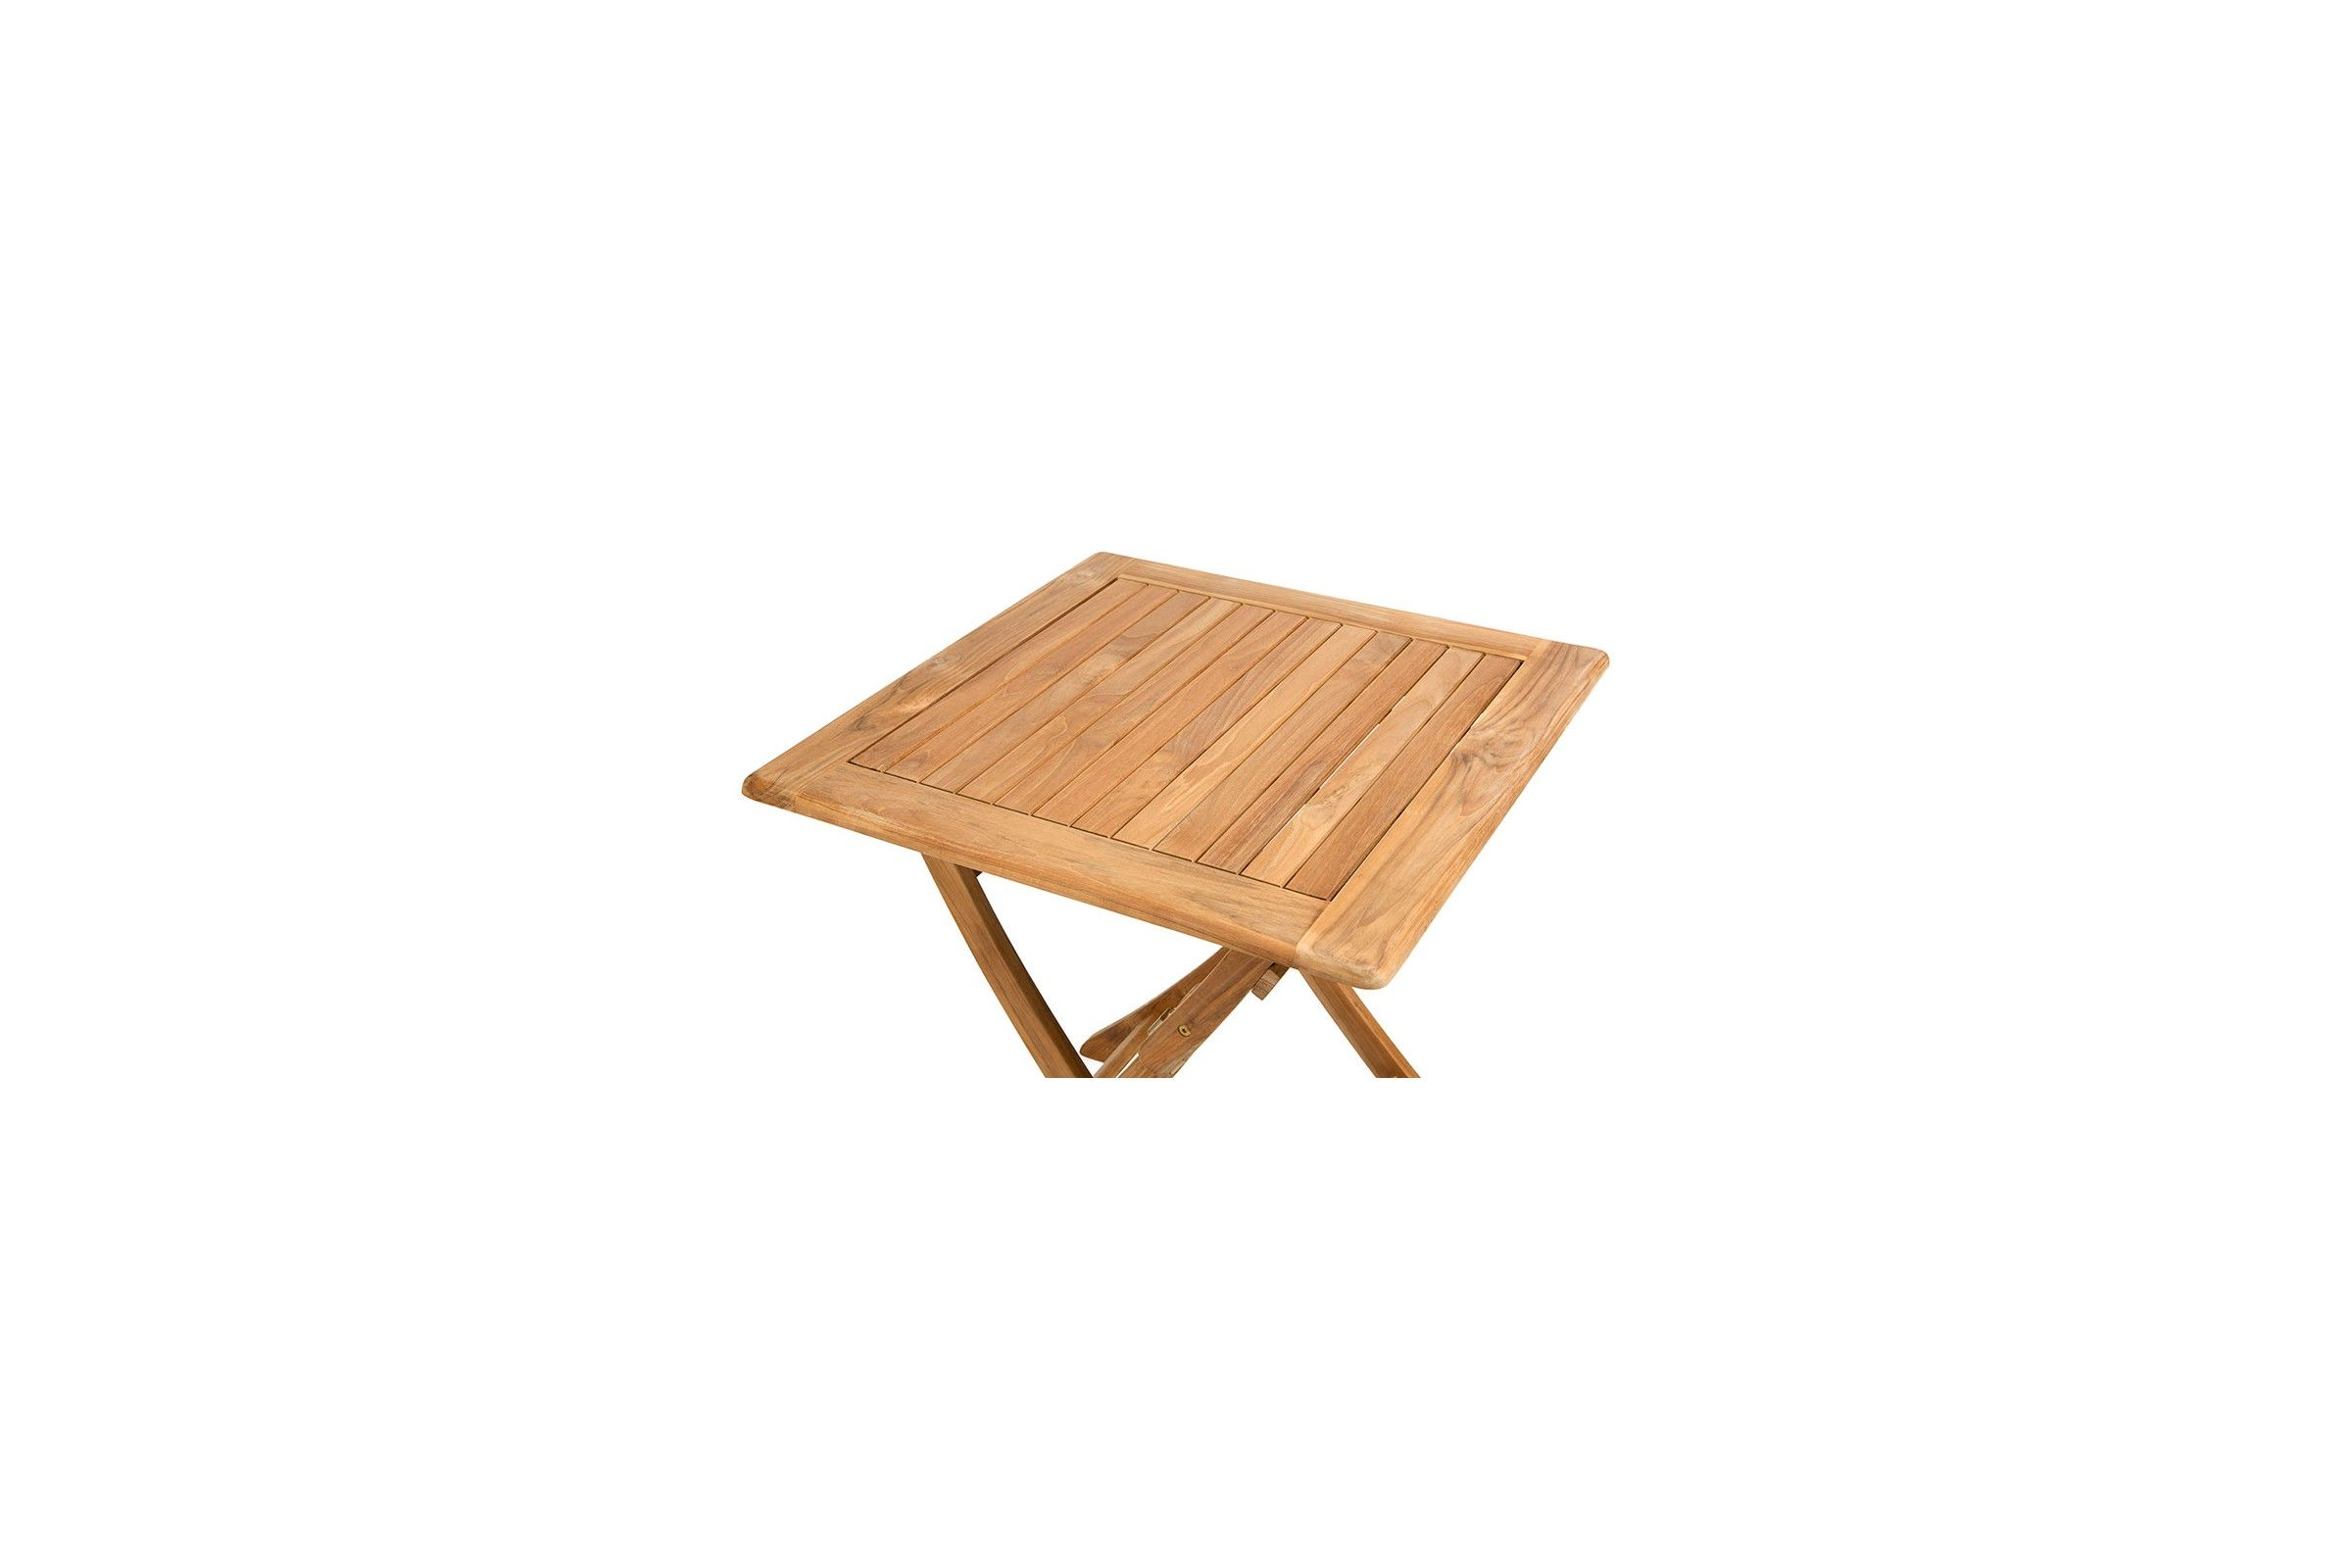 Petite table carr e 70 cm pliante en teck massif avignon for Table pliante en teck